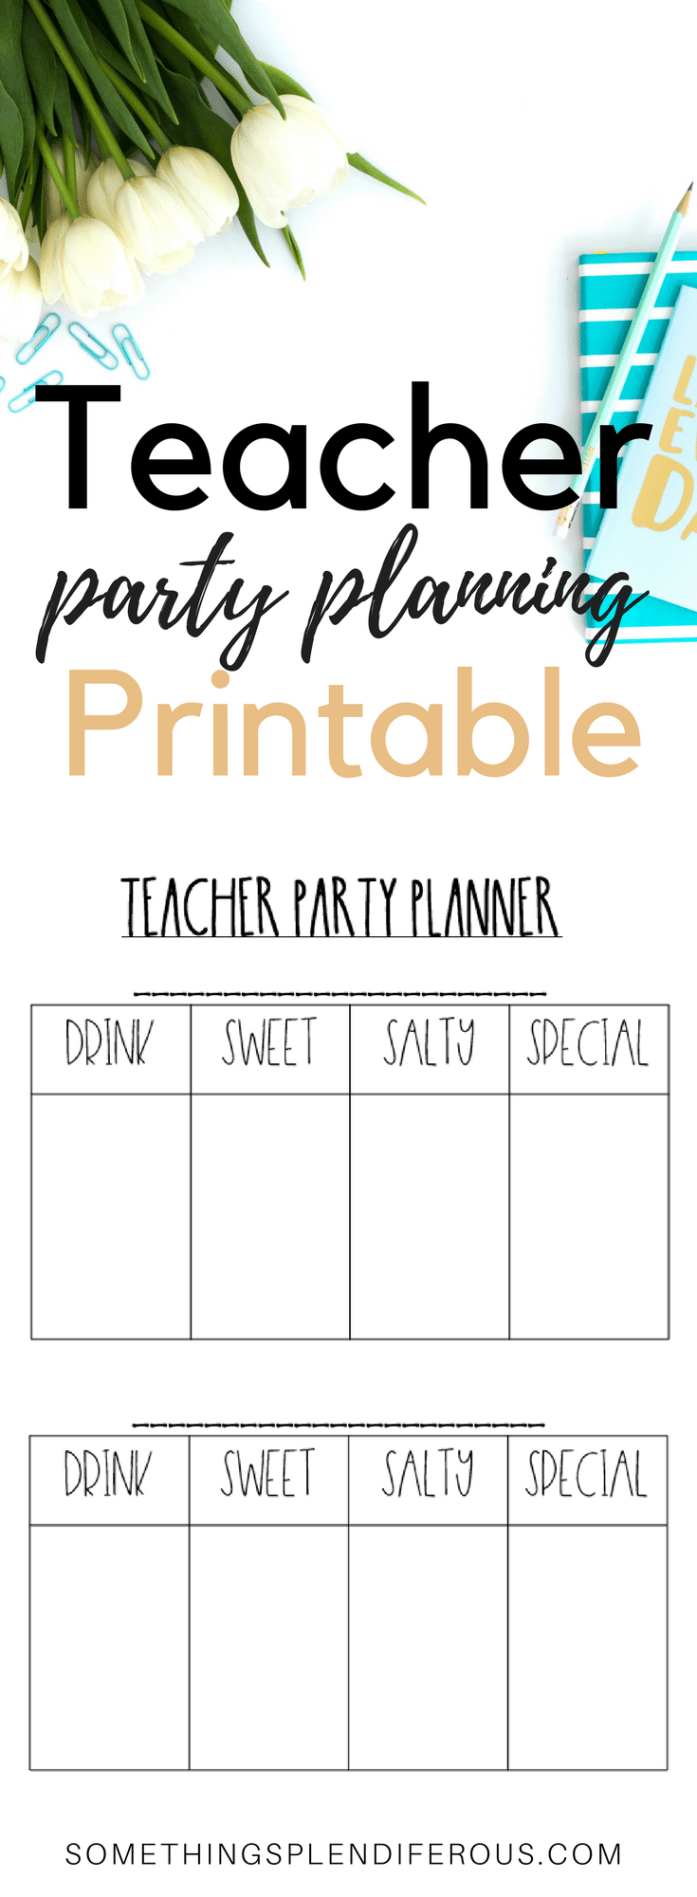 How to Rock You Classroom Parties Free Classroom Party Printable template www.somethingsplendiferous.com